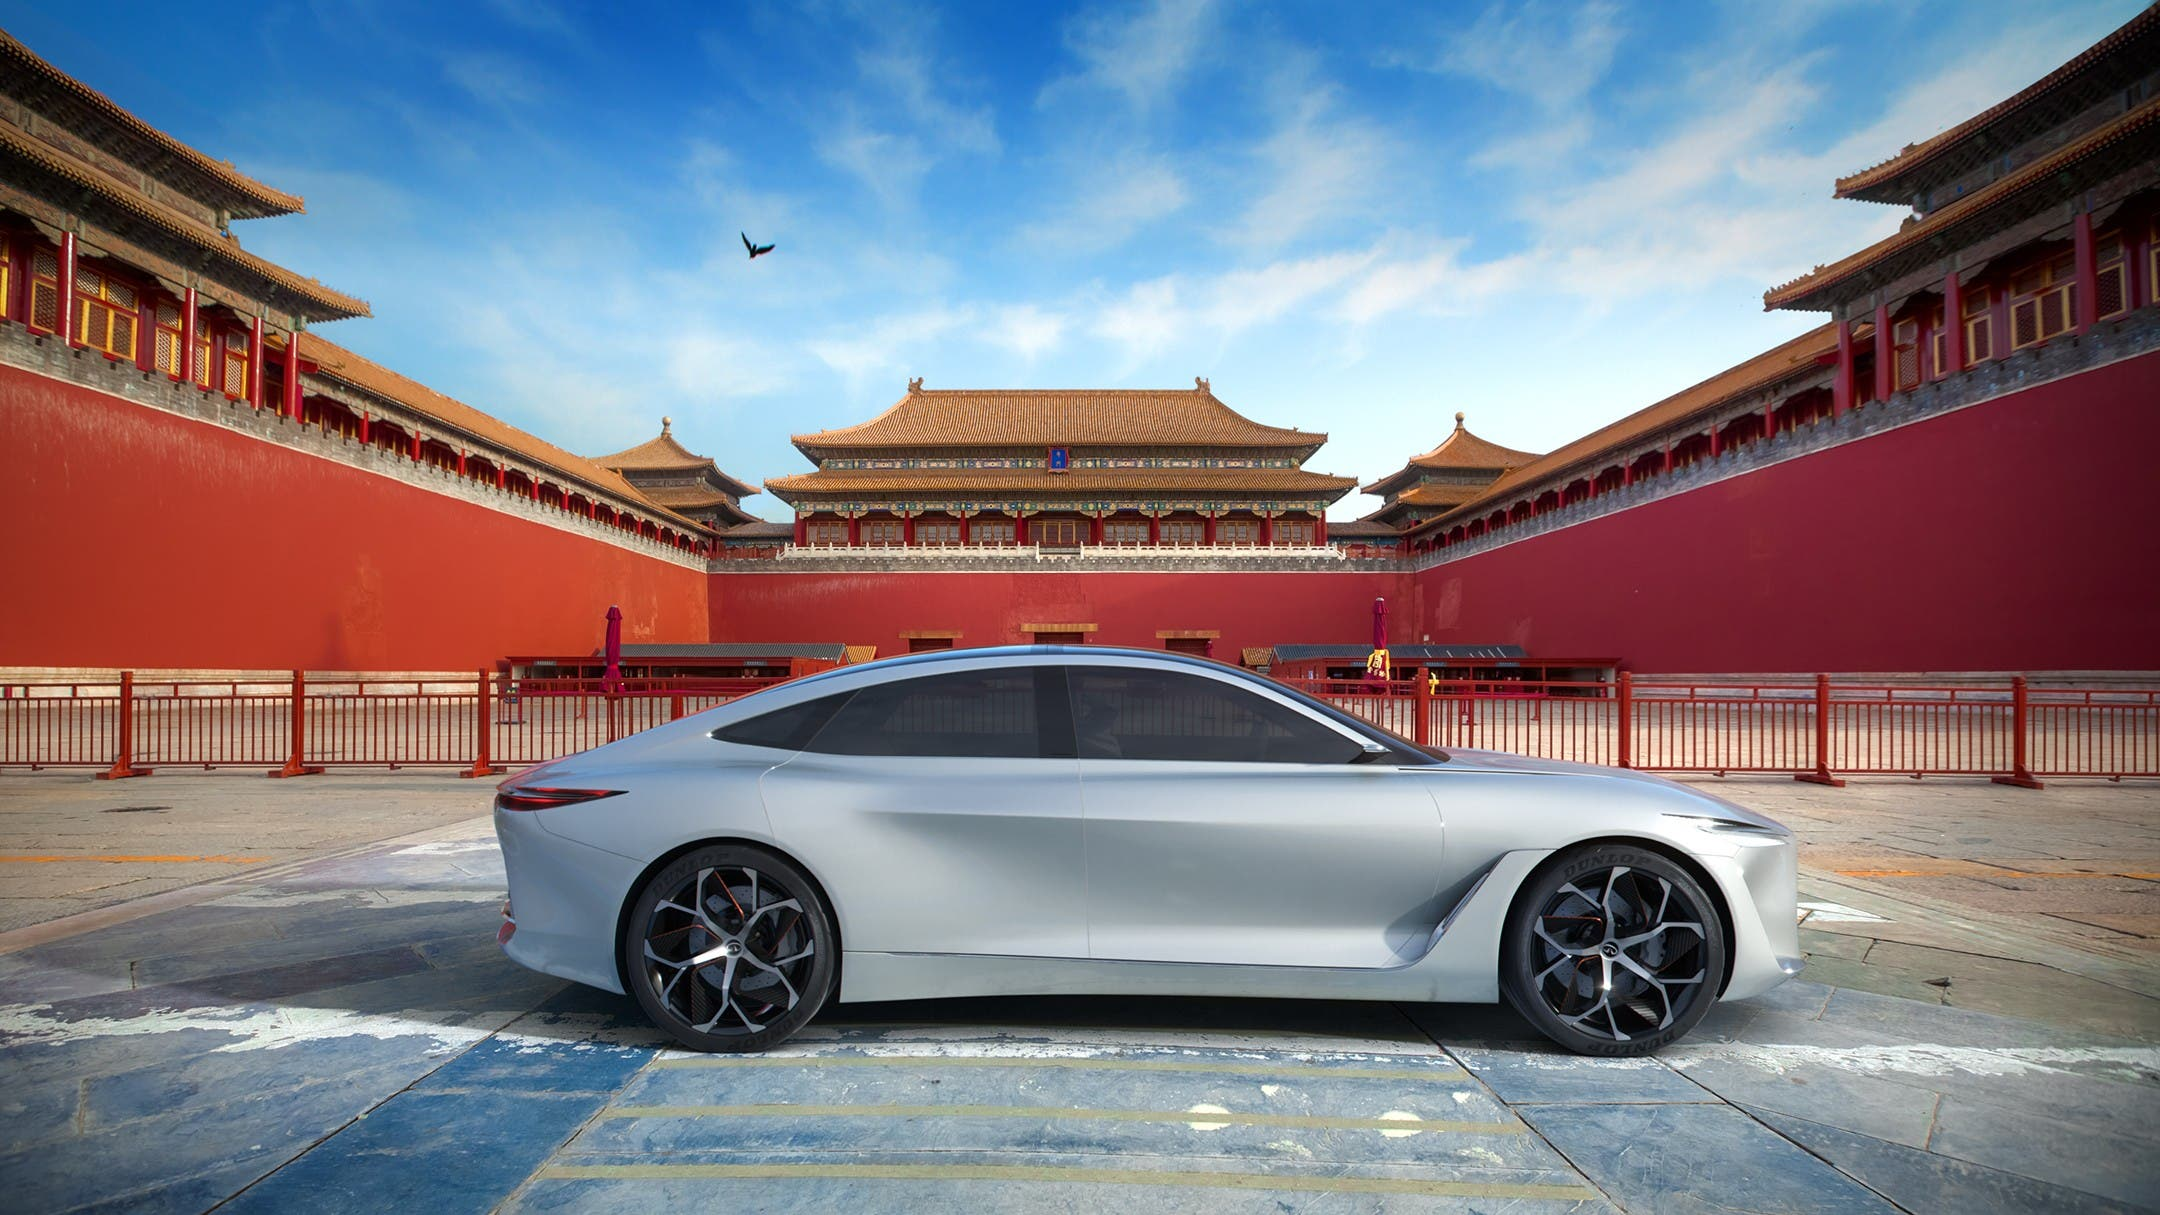 Announced That The Company Is Now In Process Of Developing A New All Electric Vehicle Platform Based Around Q Inspiration Concept Car Design